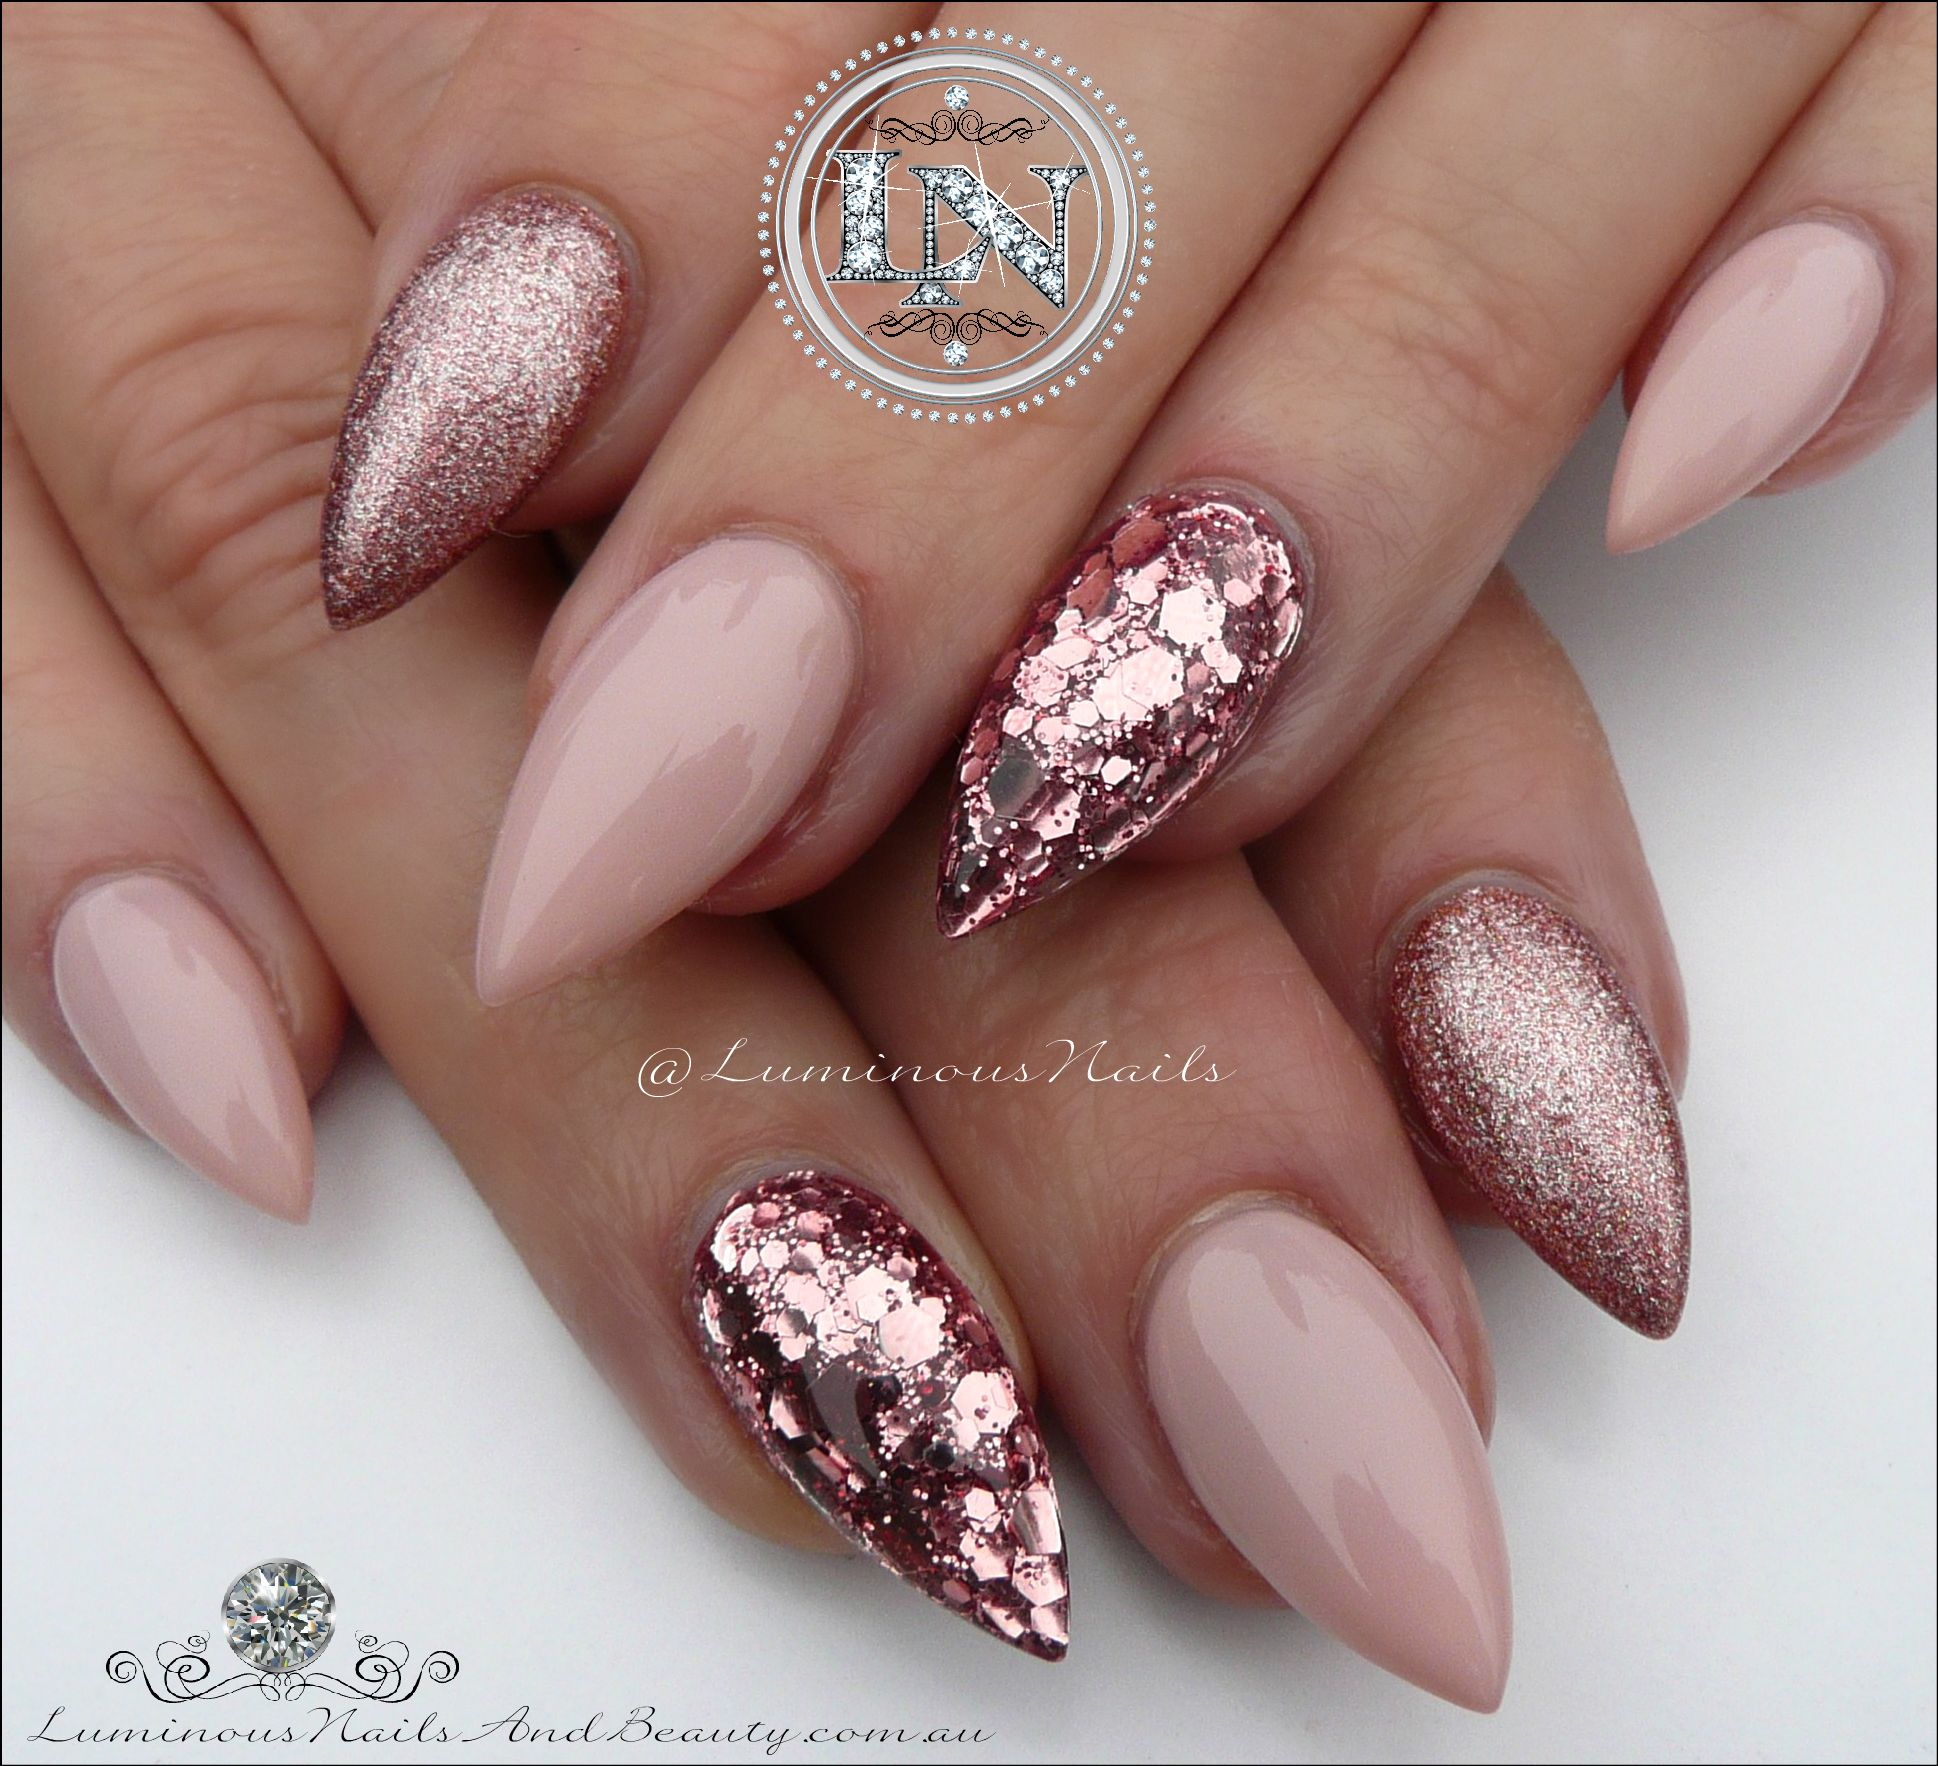 luminous nails beauty gold coast qld rose gold nails. Black Bedroom Furniture Sets. Home Design Ideas